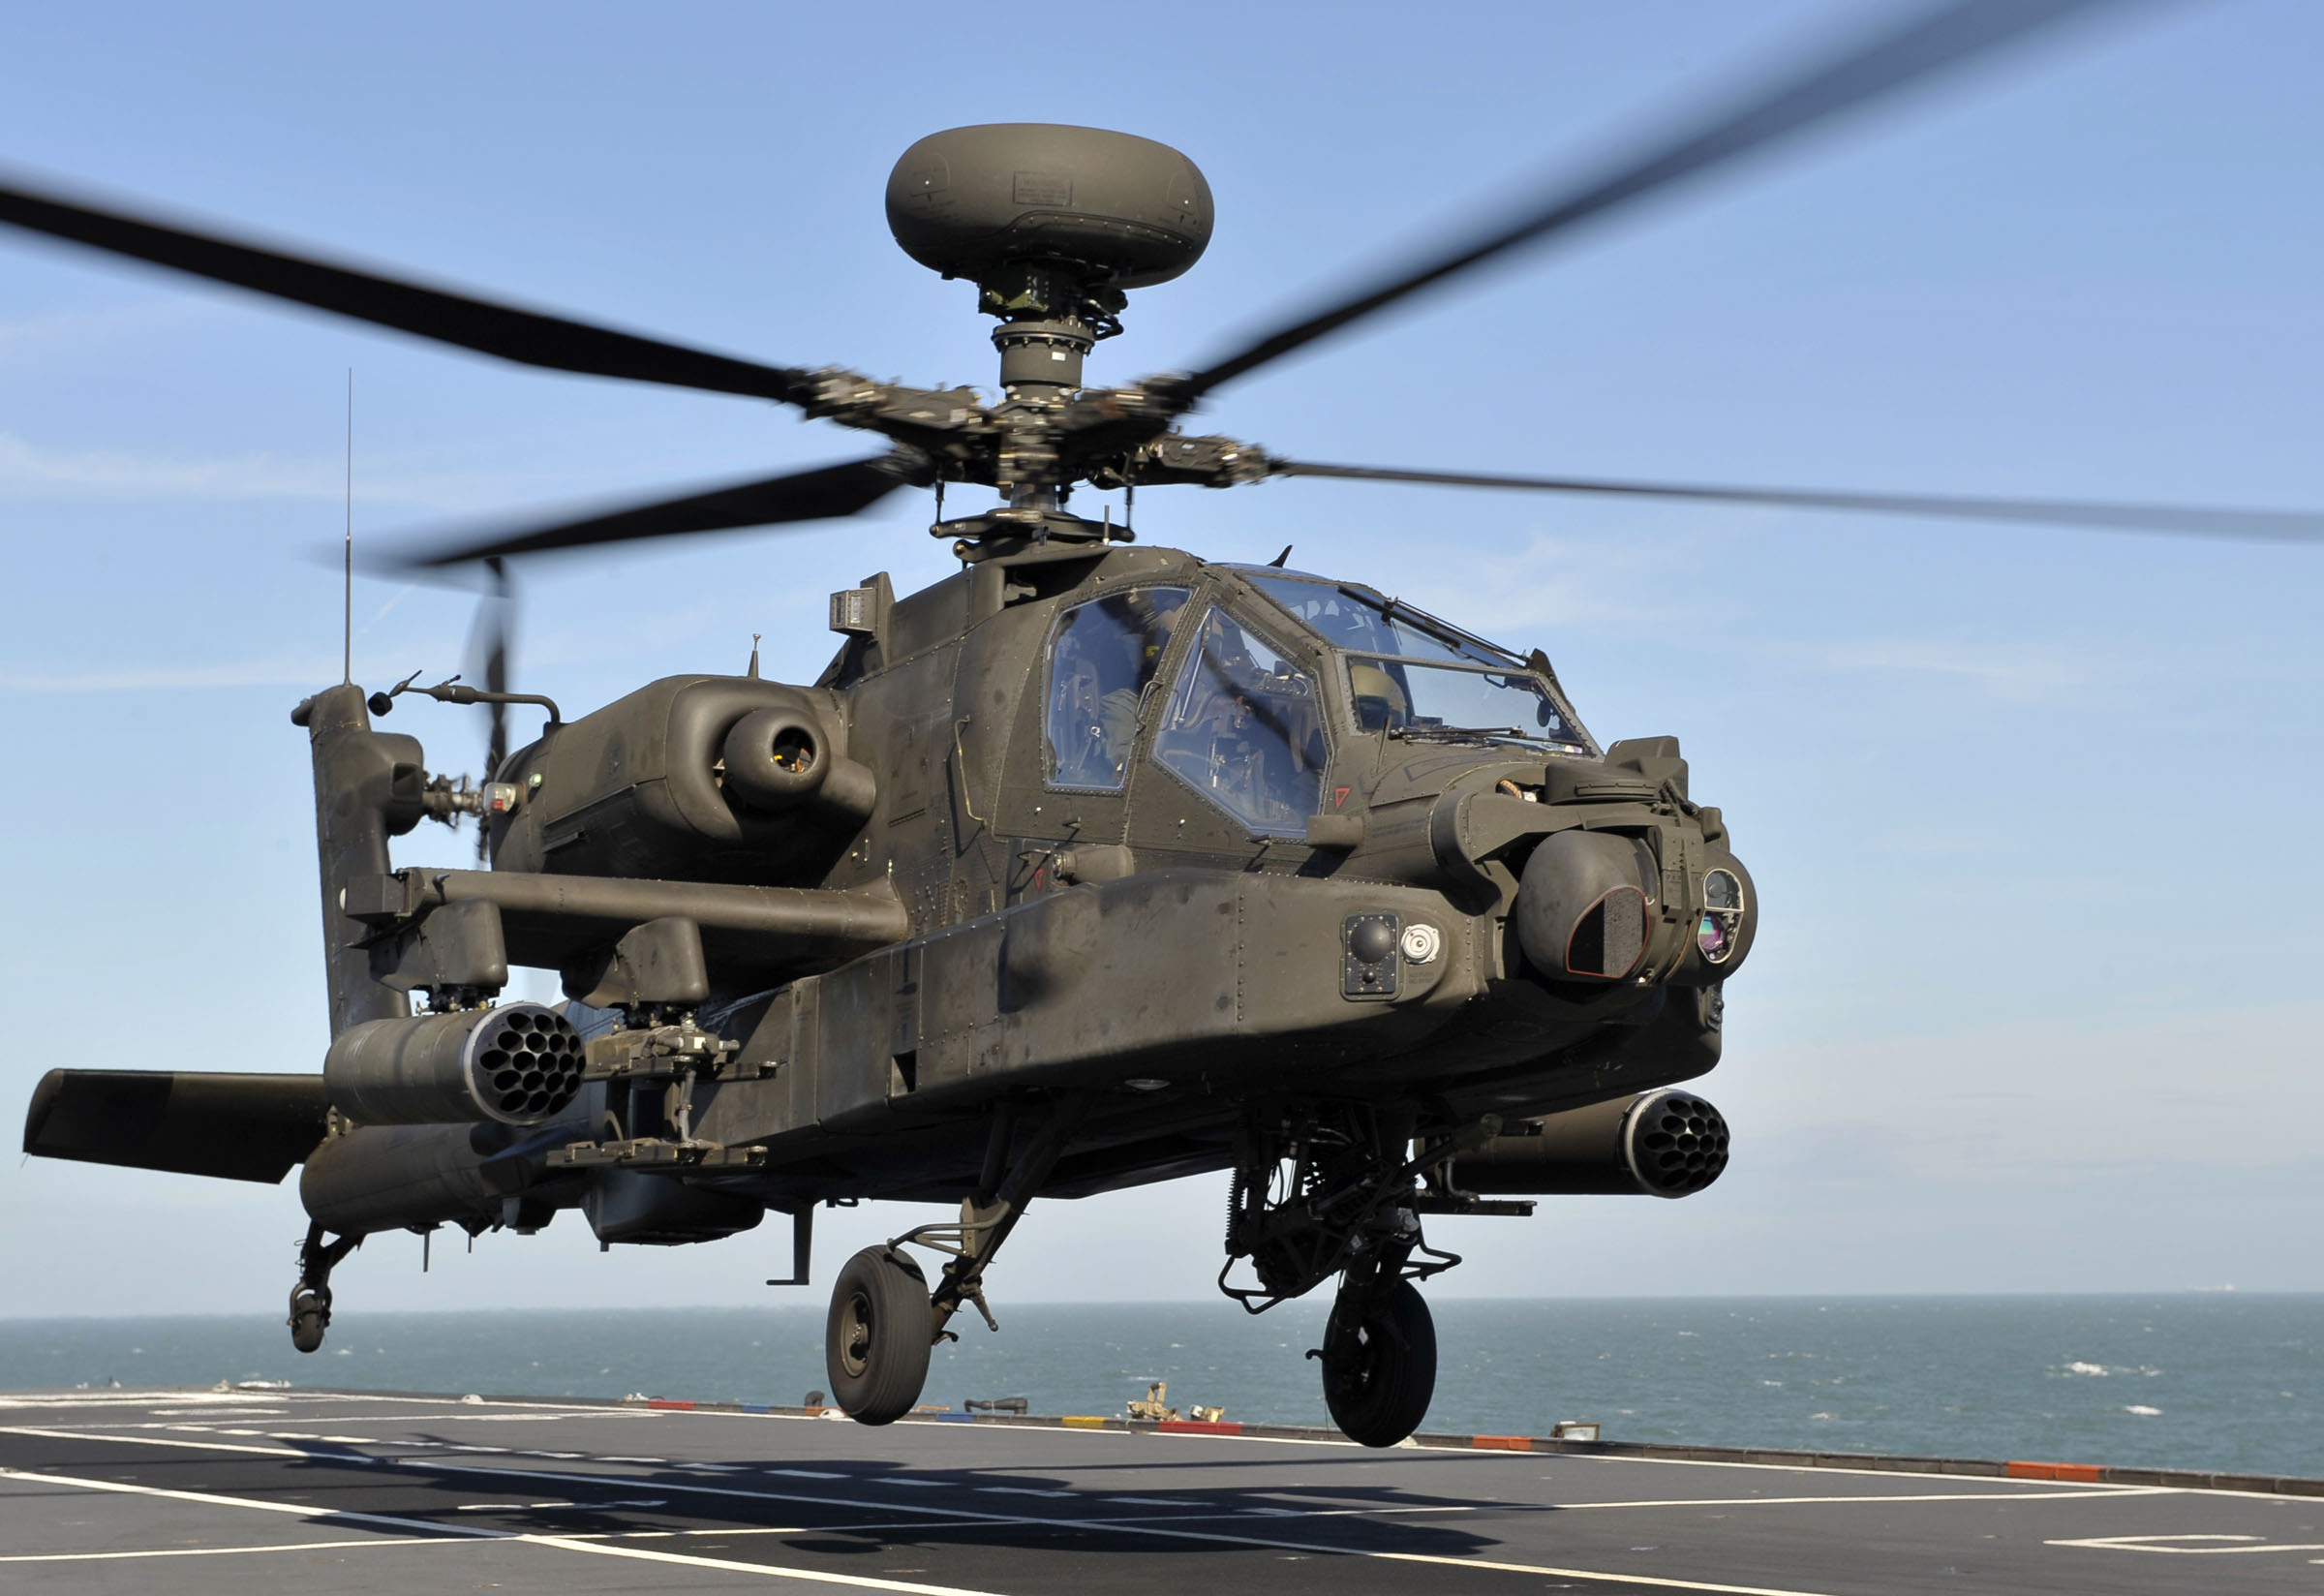 Gen3 Common Missile Warning System to be installed on Apache (pictured), Chinook, Wildcat, and Merlin aircraft. (Cleared by U.K. MoD for open release.)